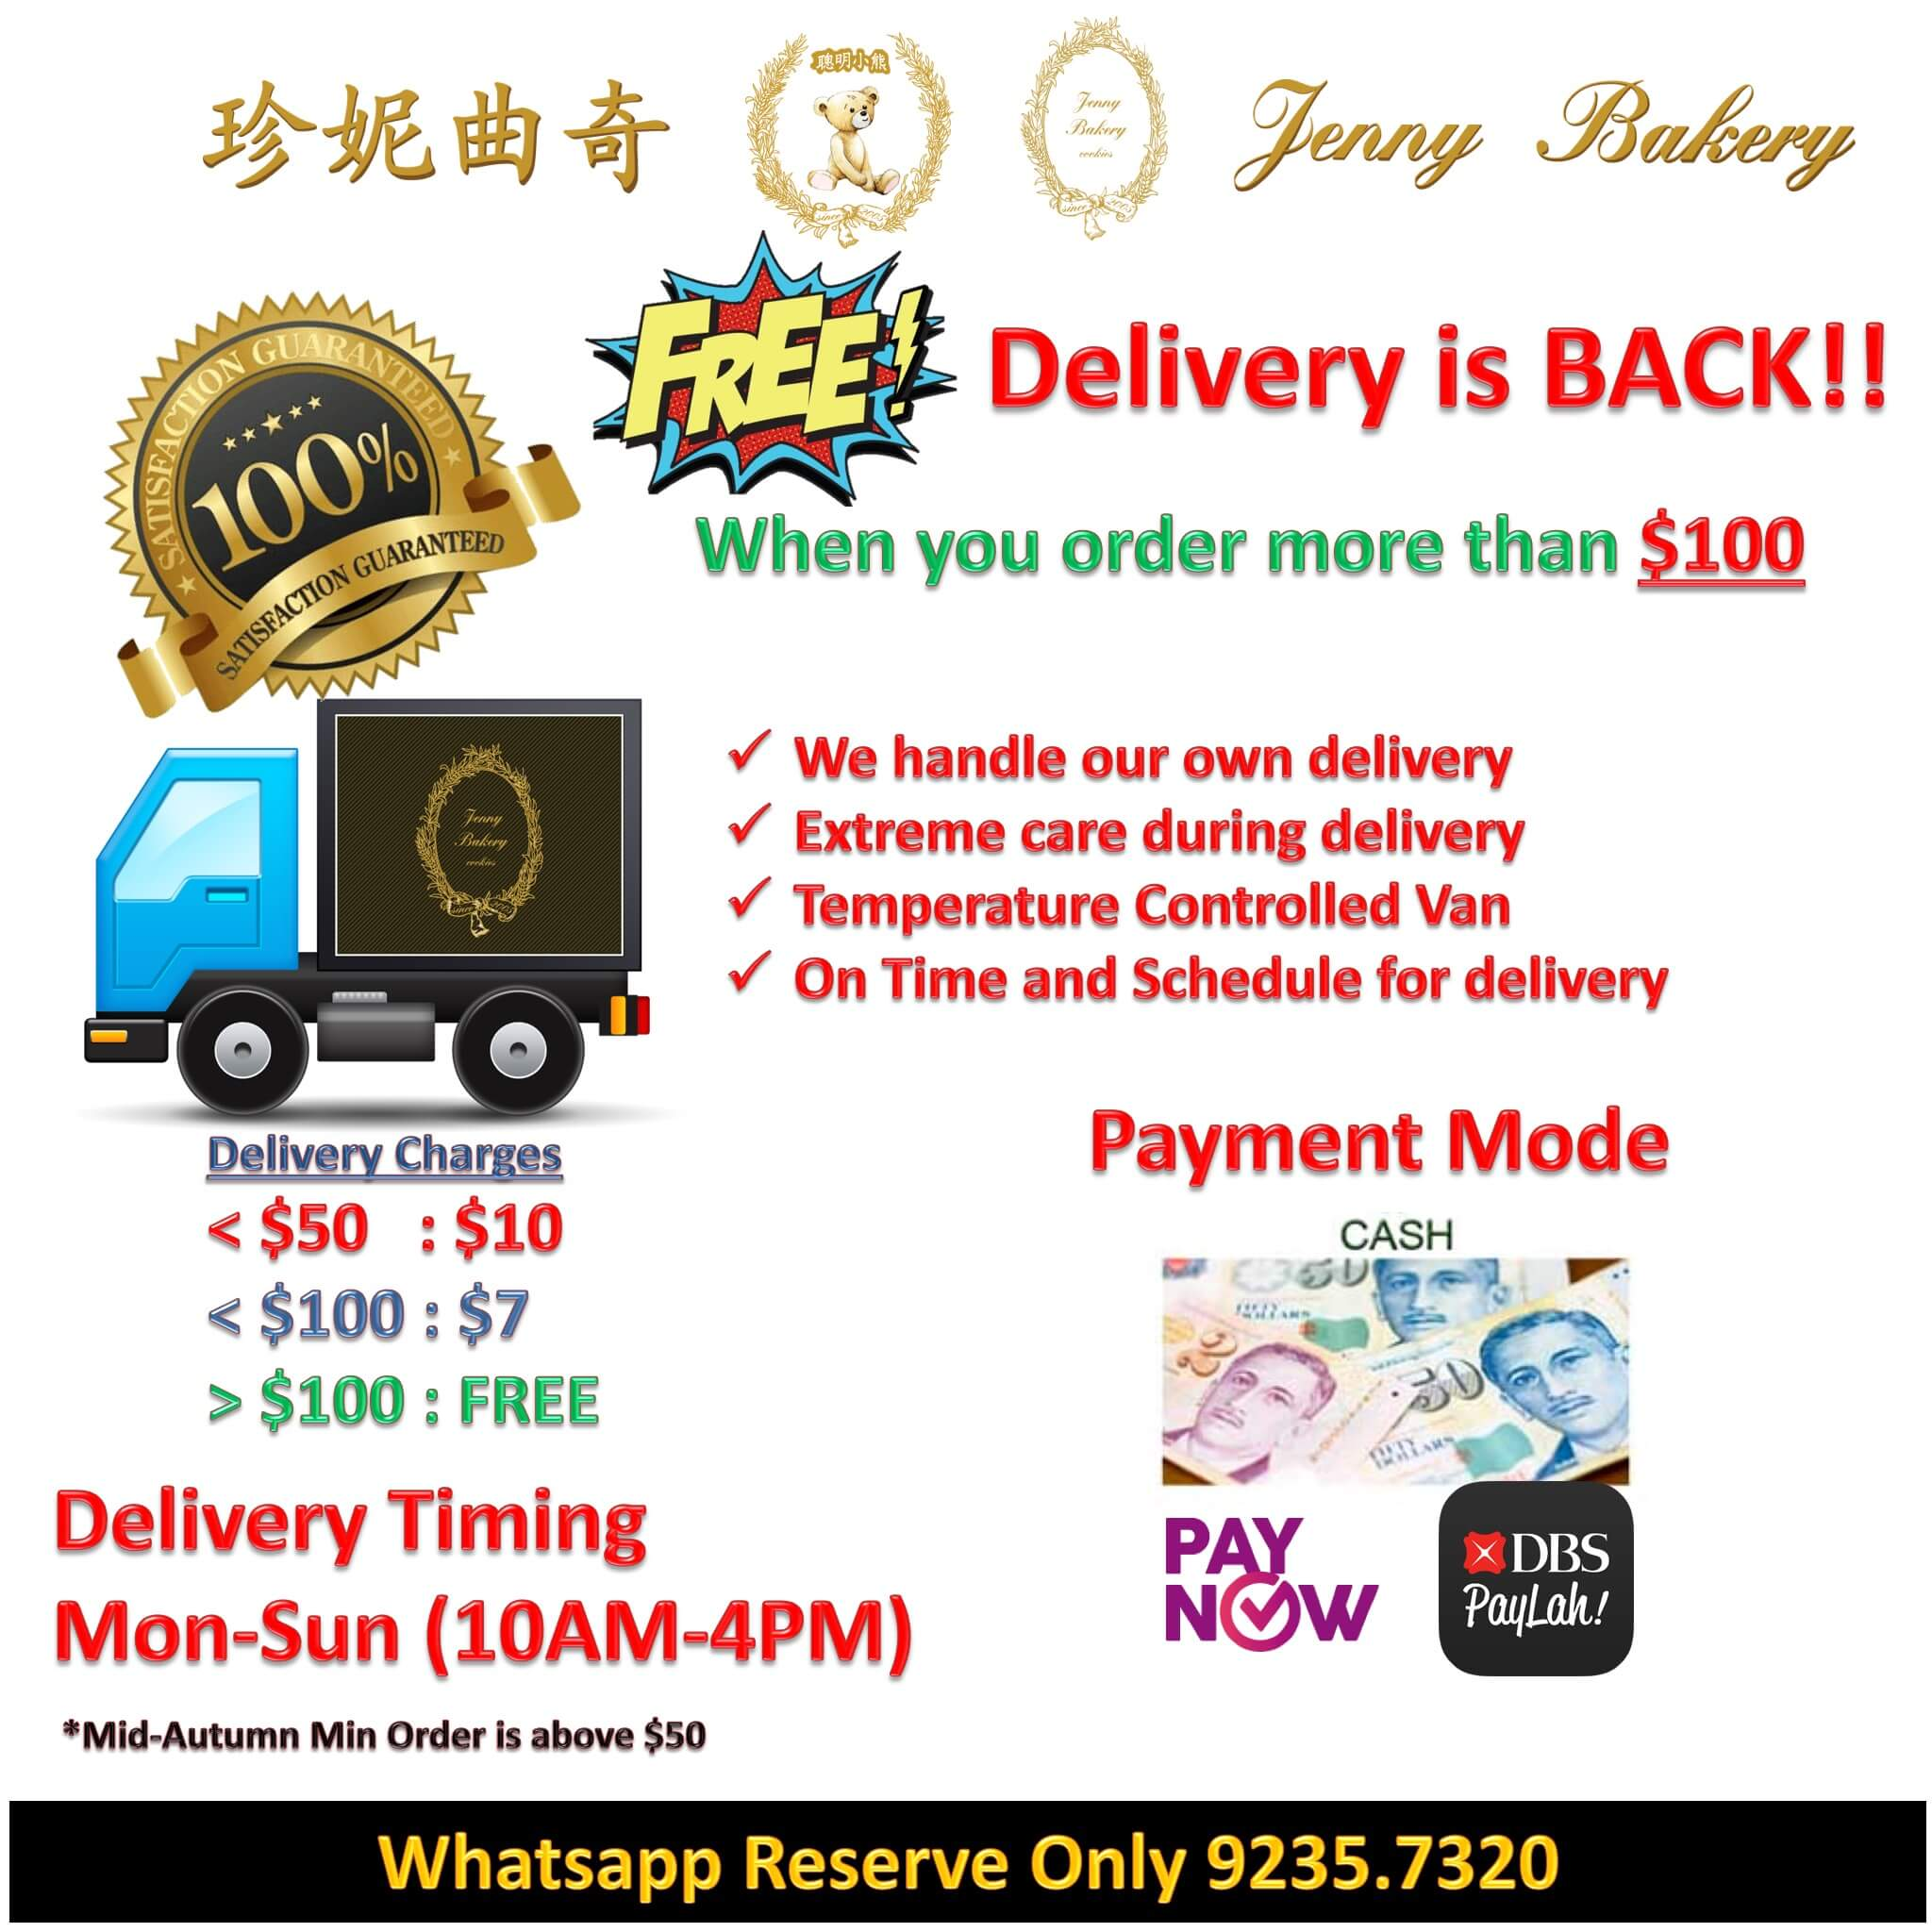 Free Delivery when over $100